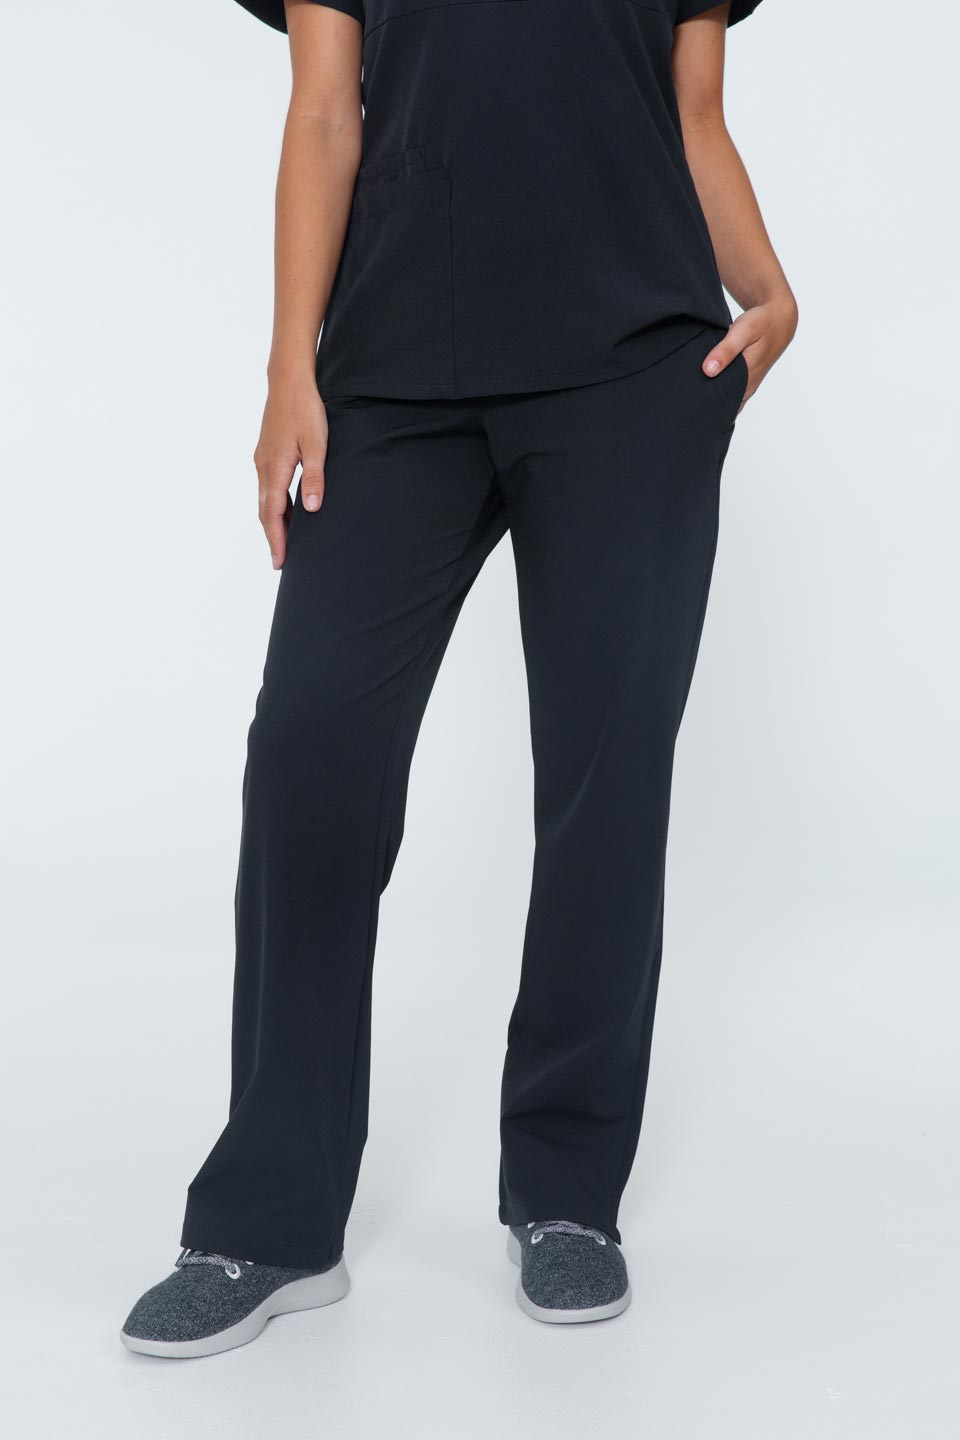 Kalea - Womens Bliss Scrub Pants - Black